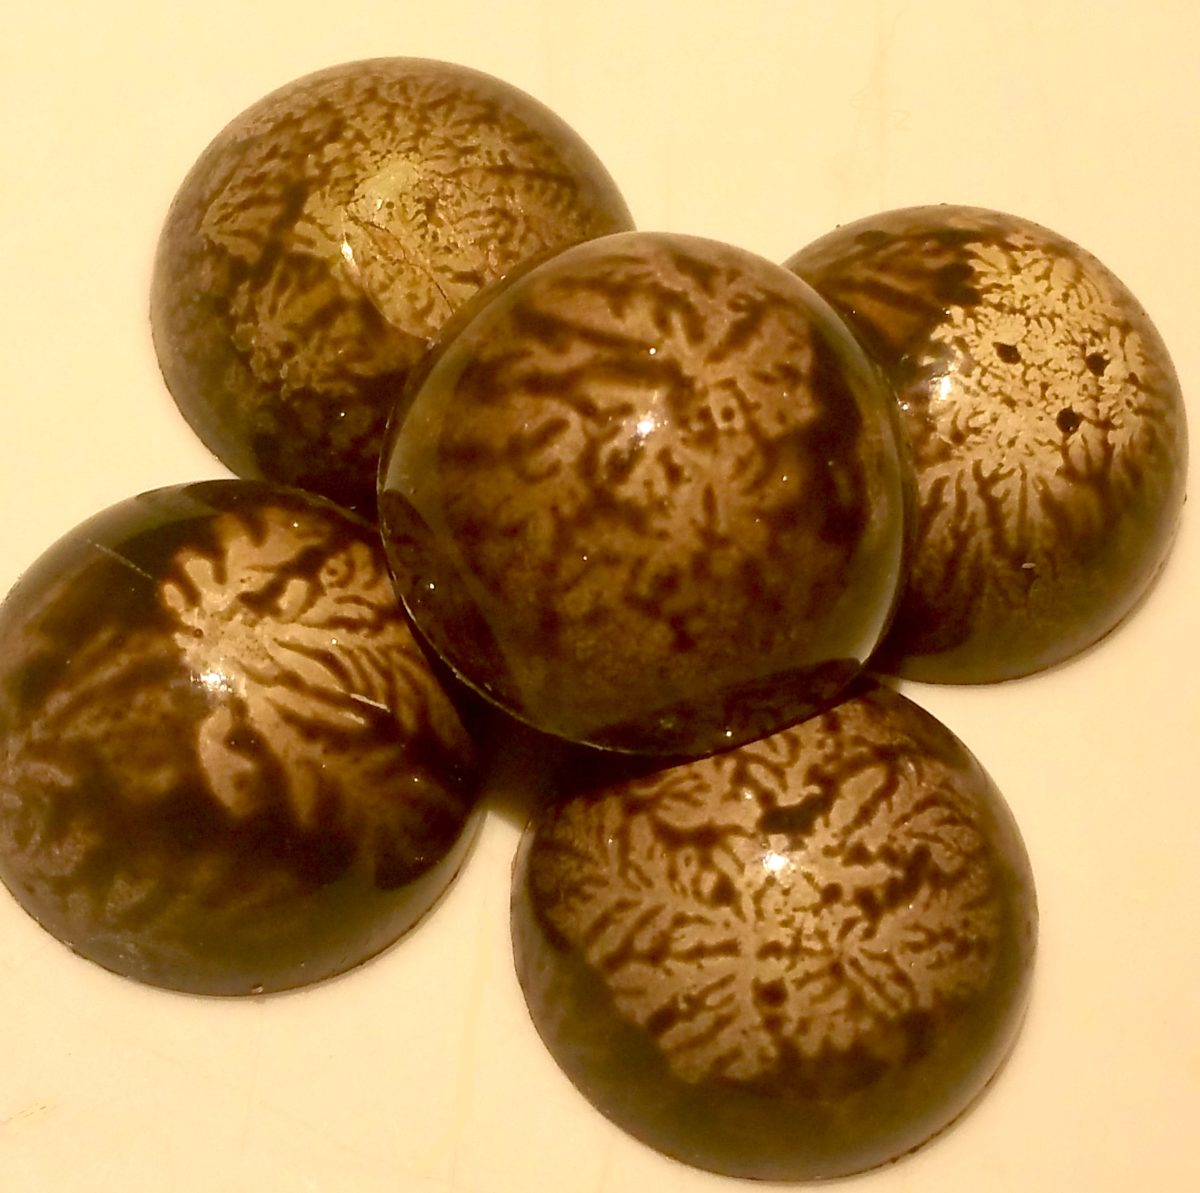 Kala King spiced coconut chocolates